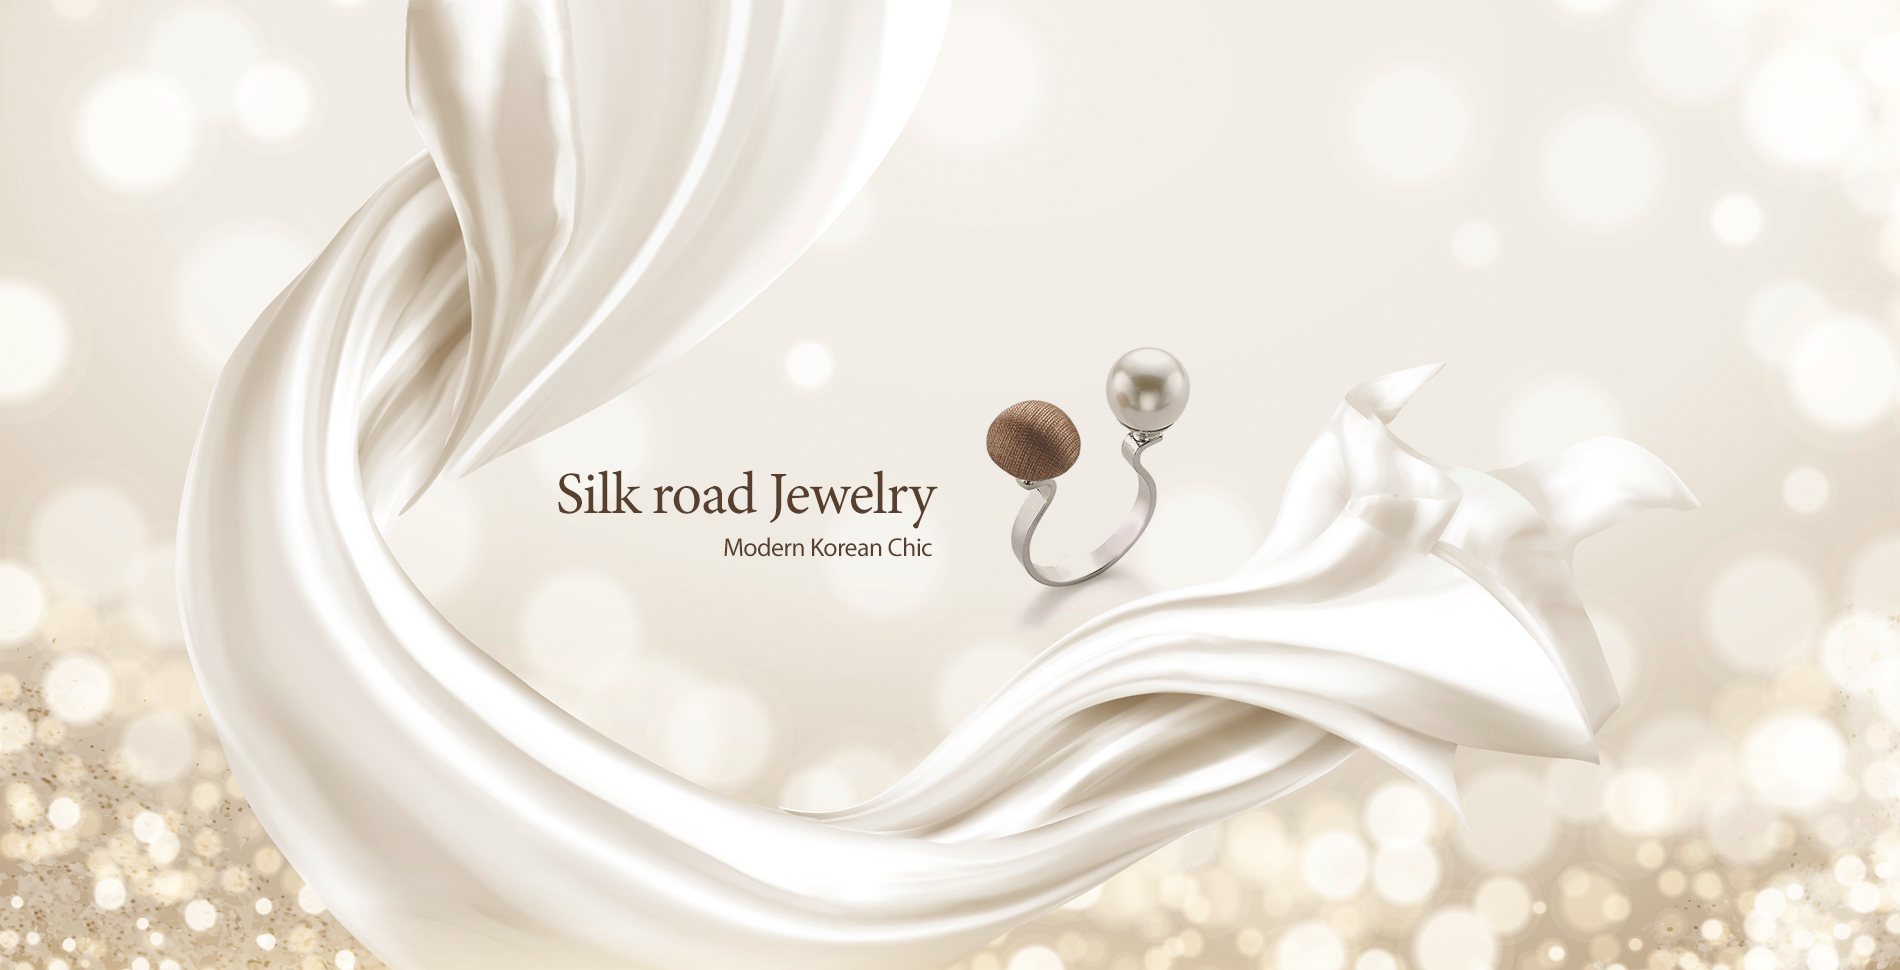 Silk Road Jewelry